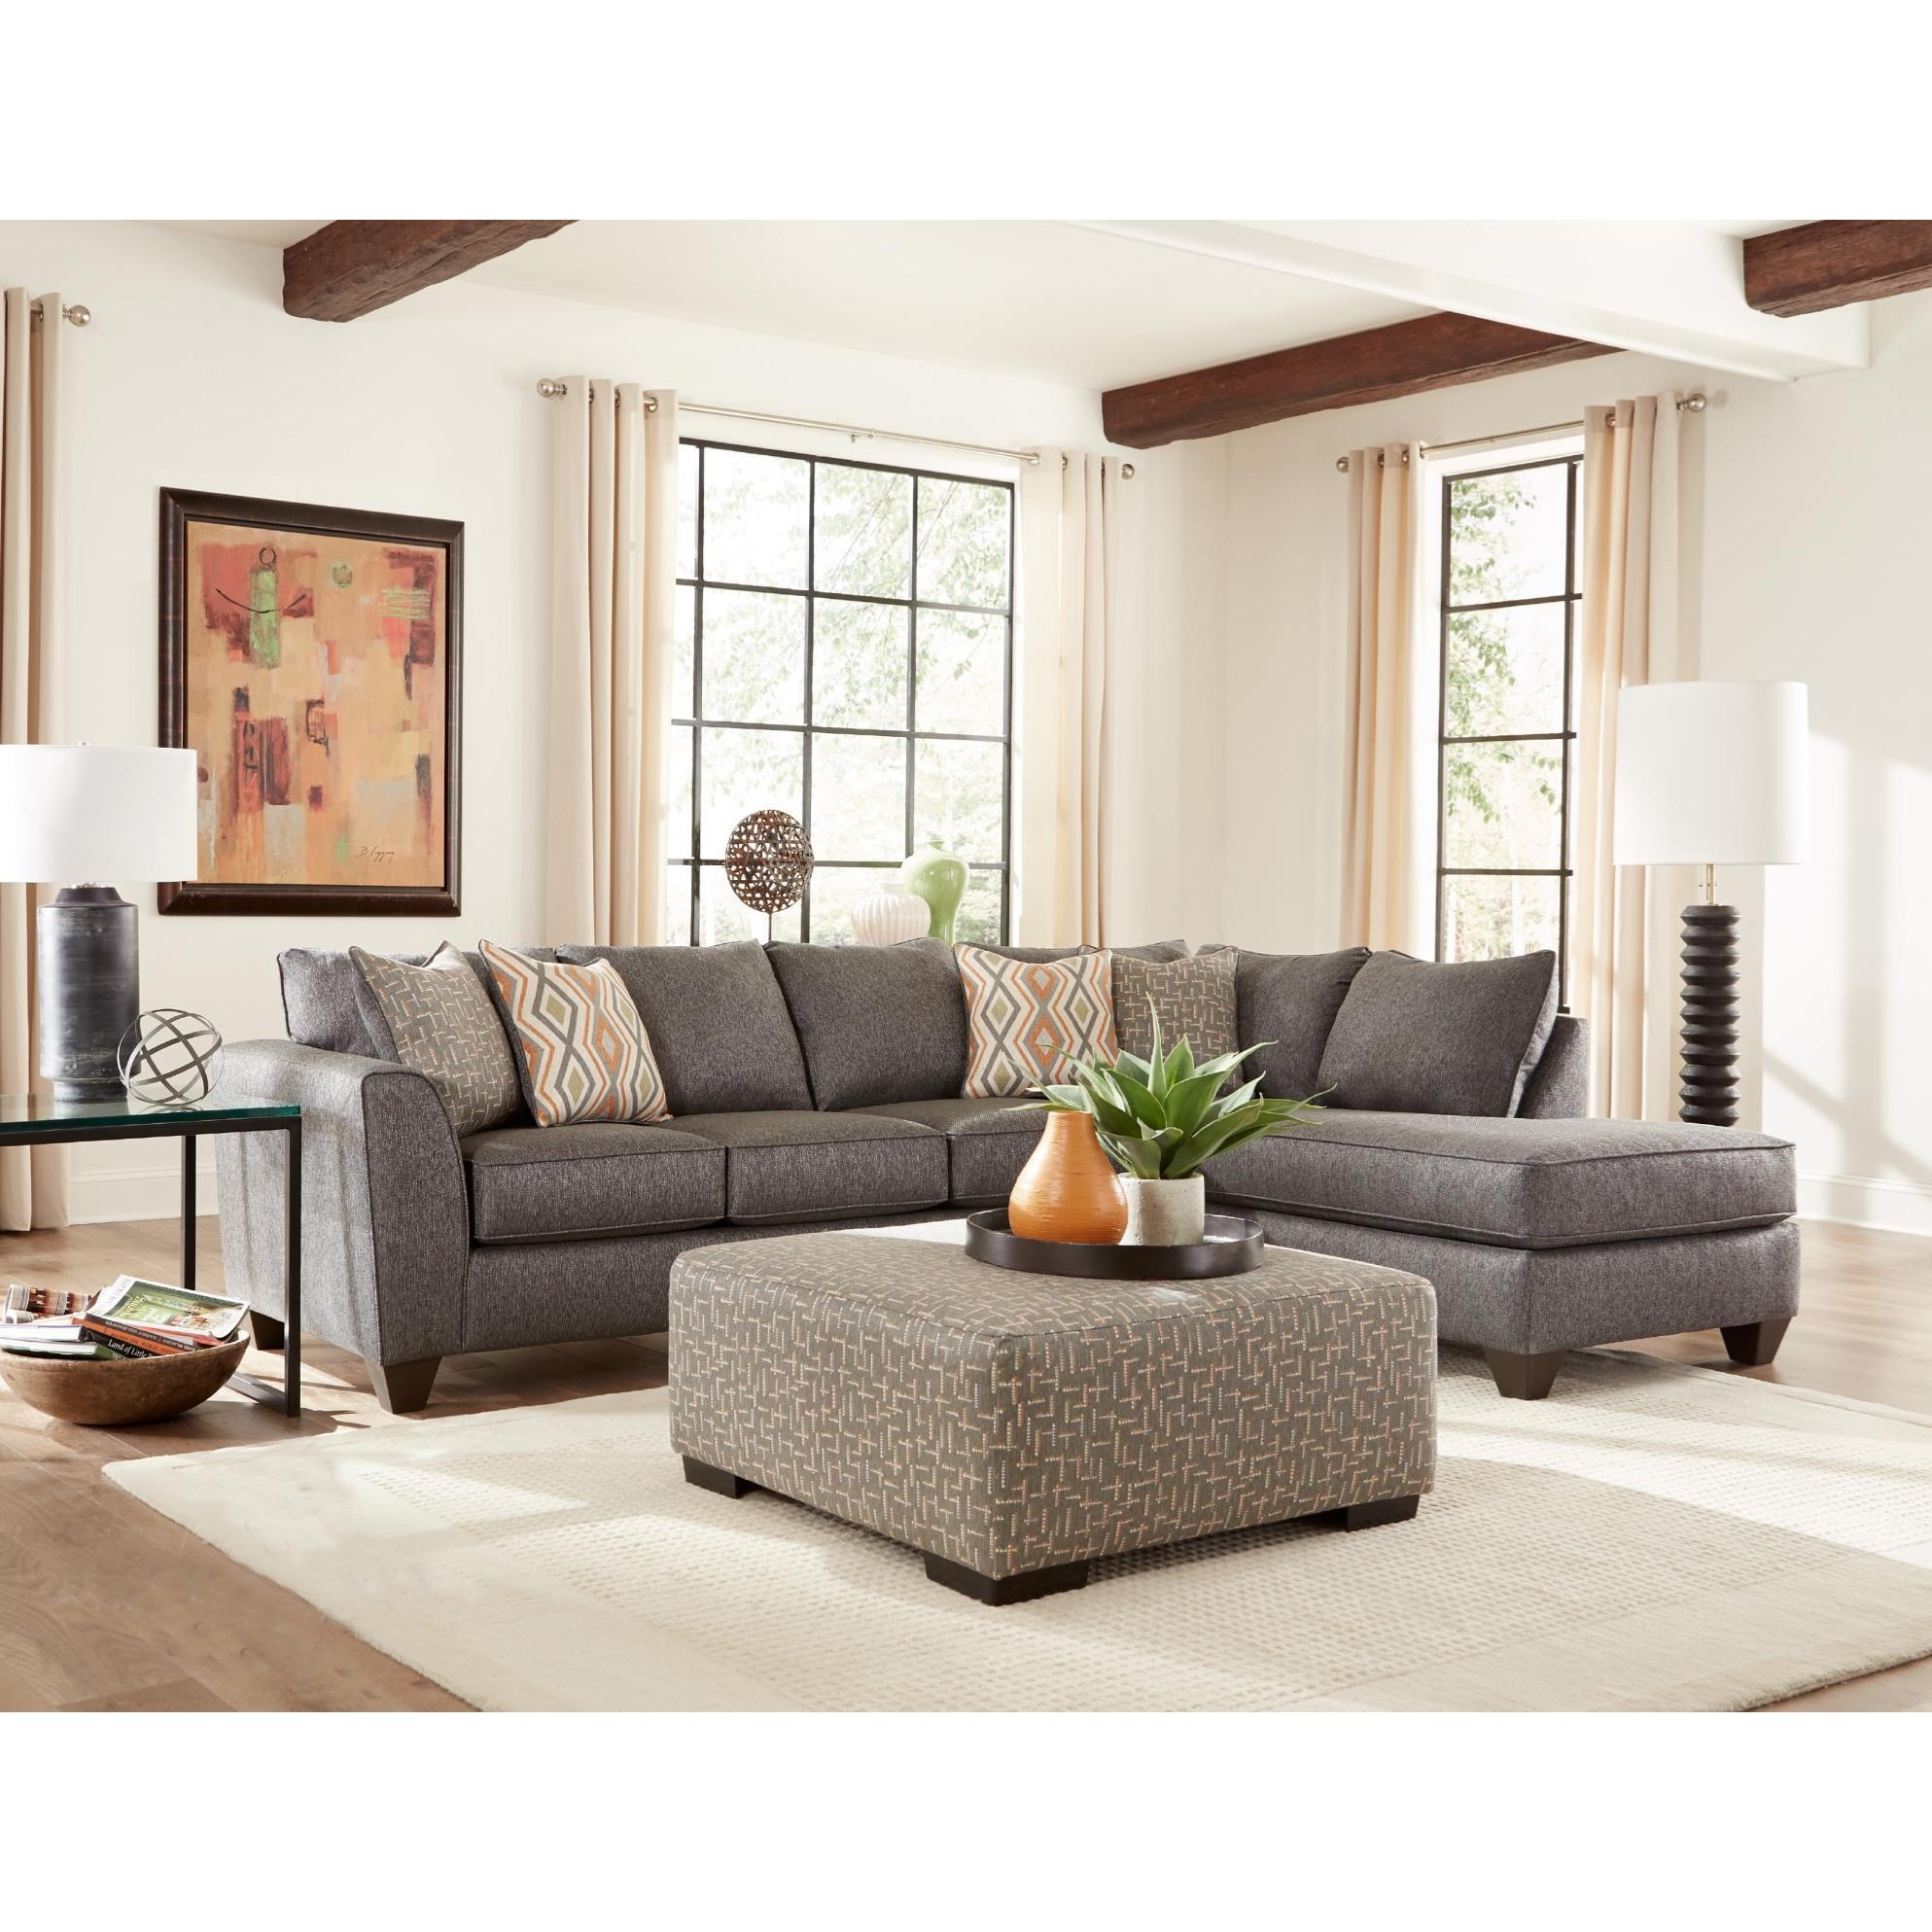 Graphite Sectional with Chaise